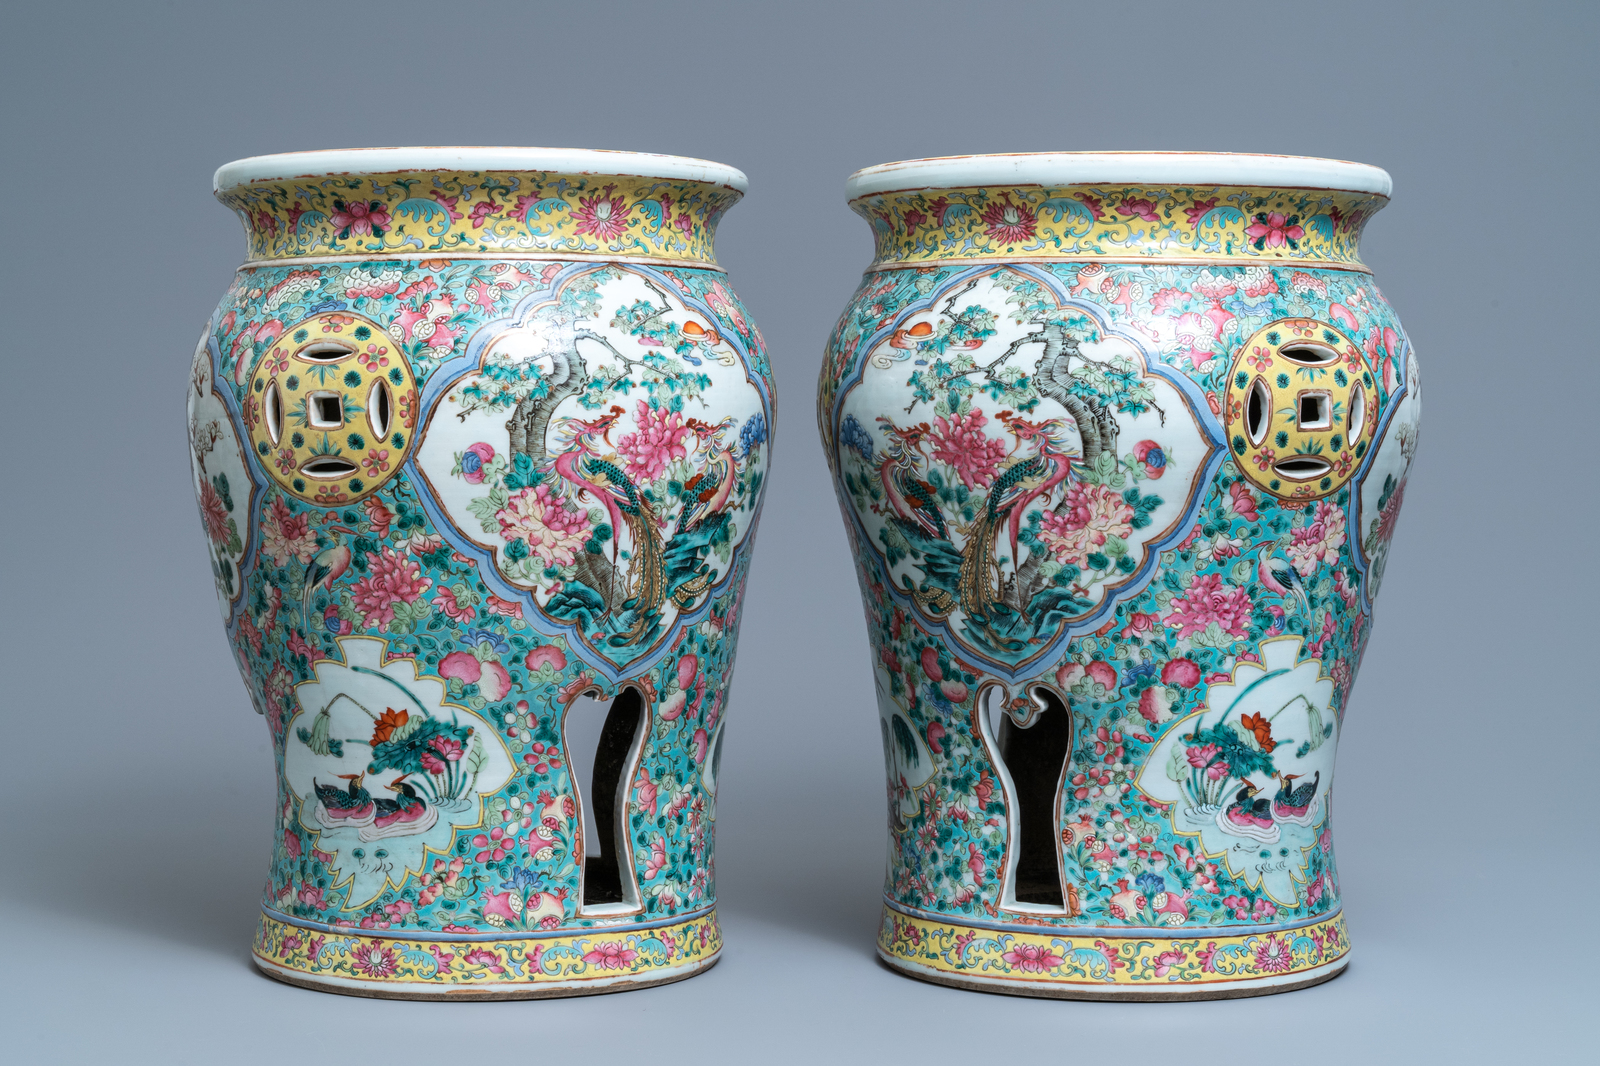 Lot 59 - A pair of reticulated Chinese famille rose garden seats, 19th C.